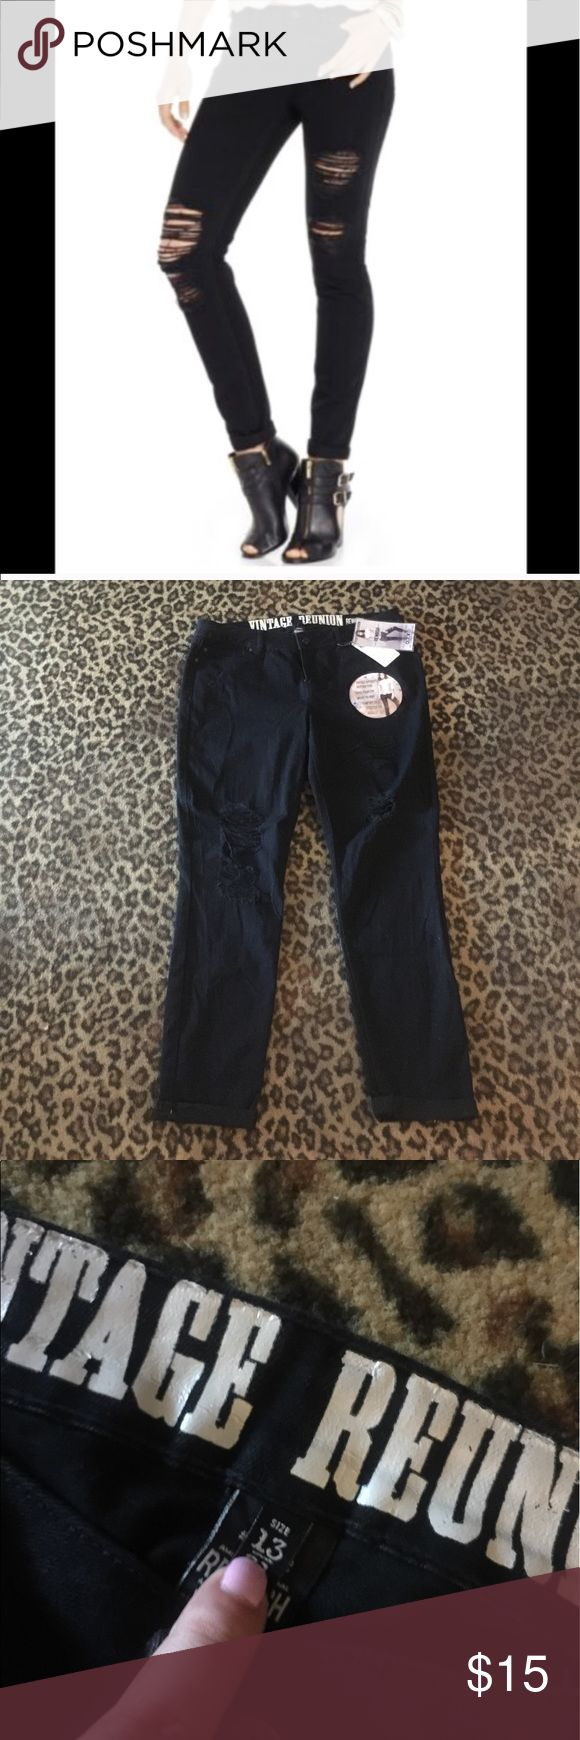 💥KILLER!💥 comfy distressed black stretch jeans! These jeans are great, just too big! I thought I was buying a juniors 13 but they actually fit like a very stretchy 15/16. They are distressed on both legs, and have a cute rolled cuff. Brand spanking New! NOT H&M only tagged for exposure. Thanks for checking out my closet BB's and happy poshing! 💜🔮💜 Jeans Skinny